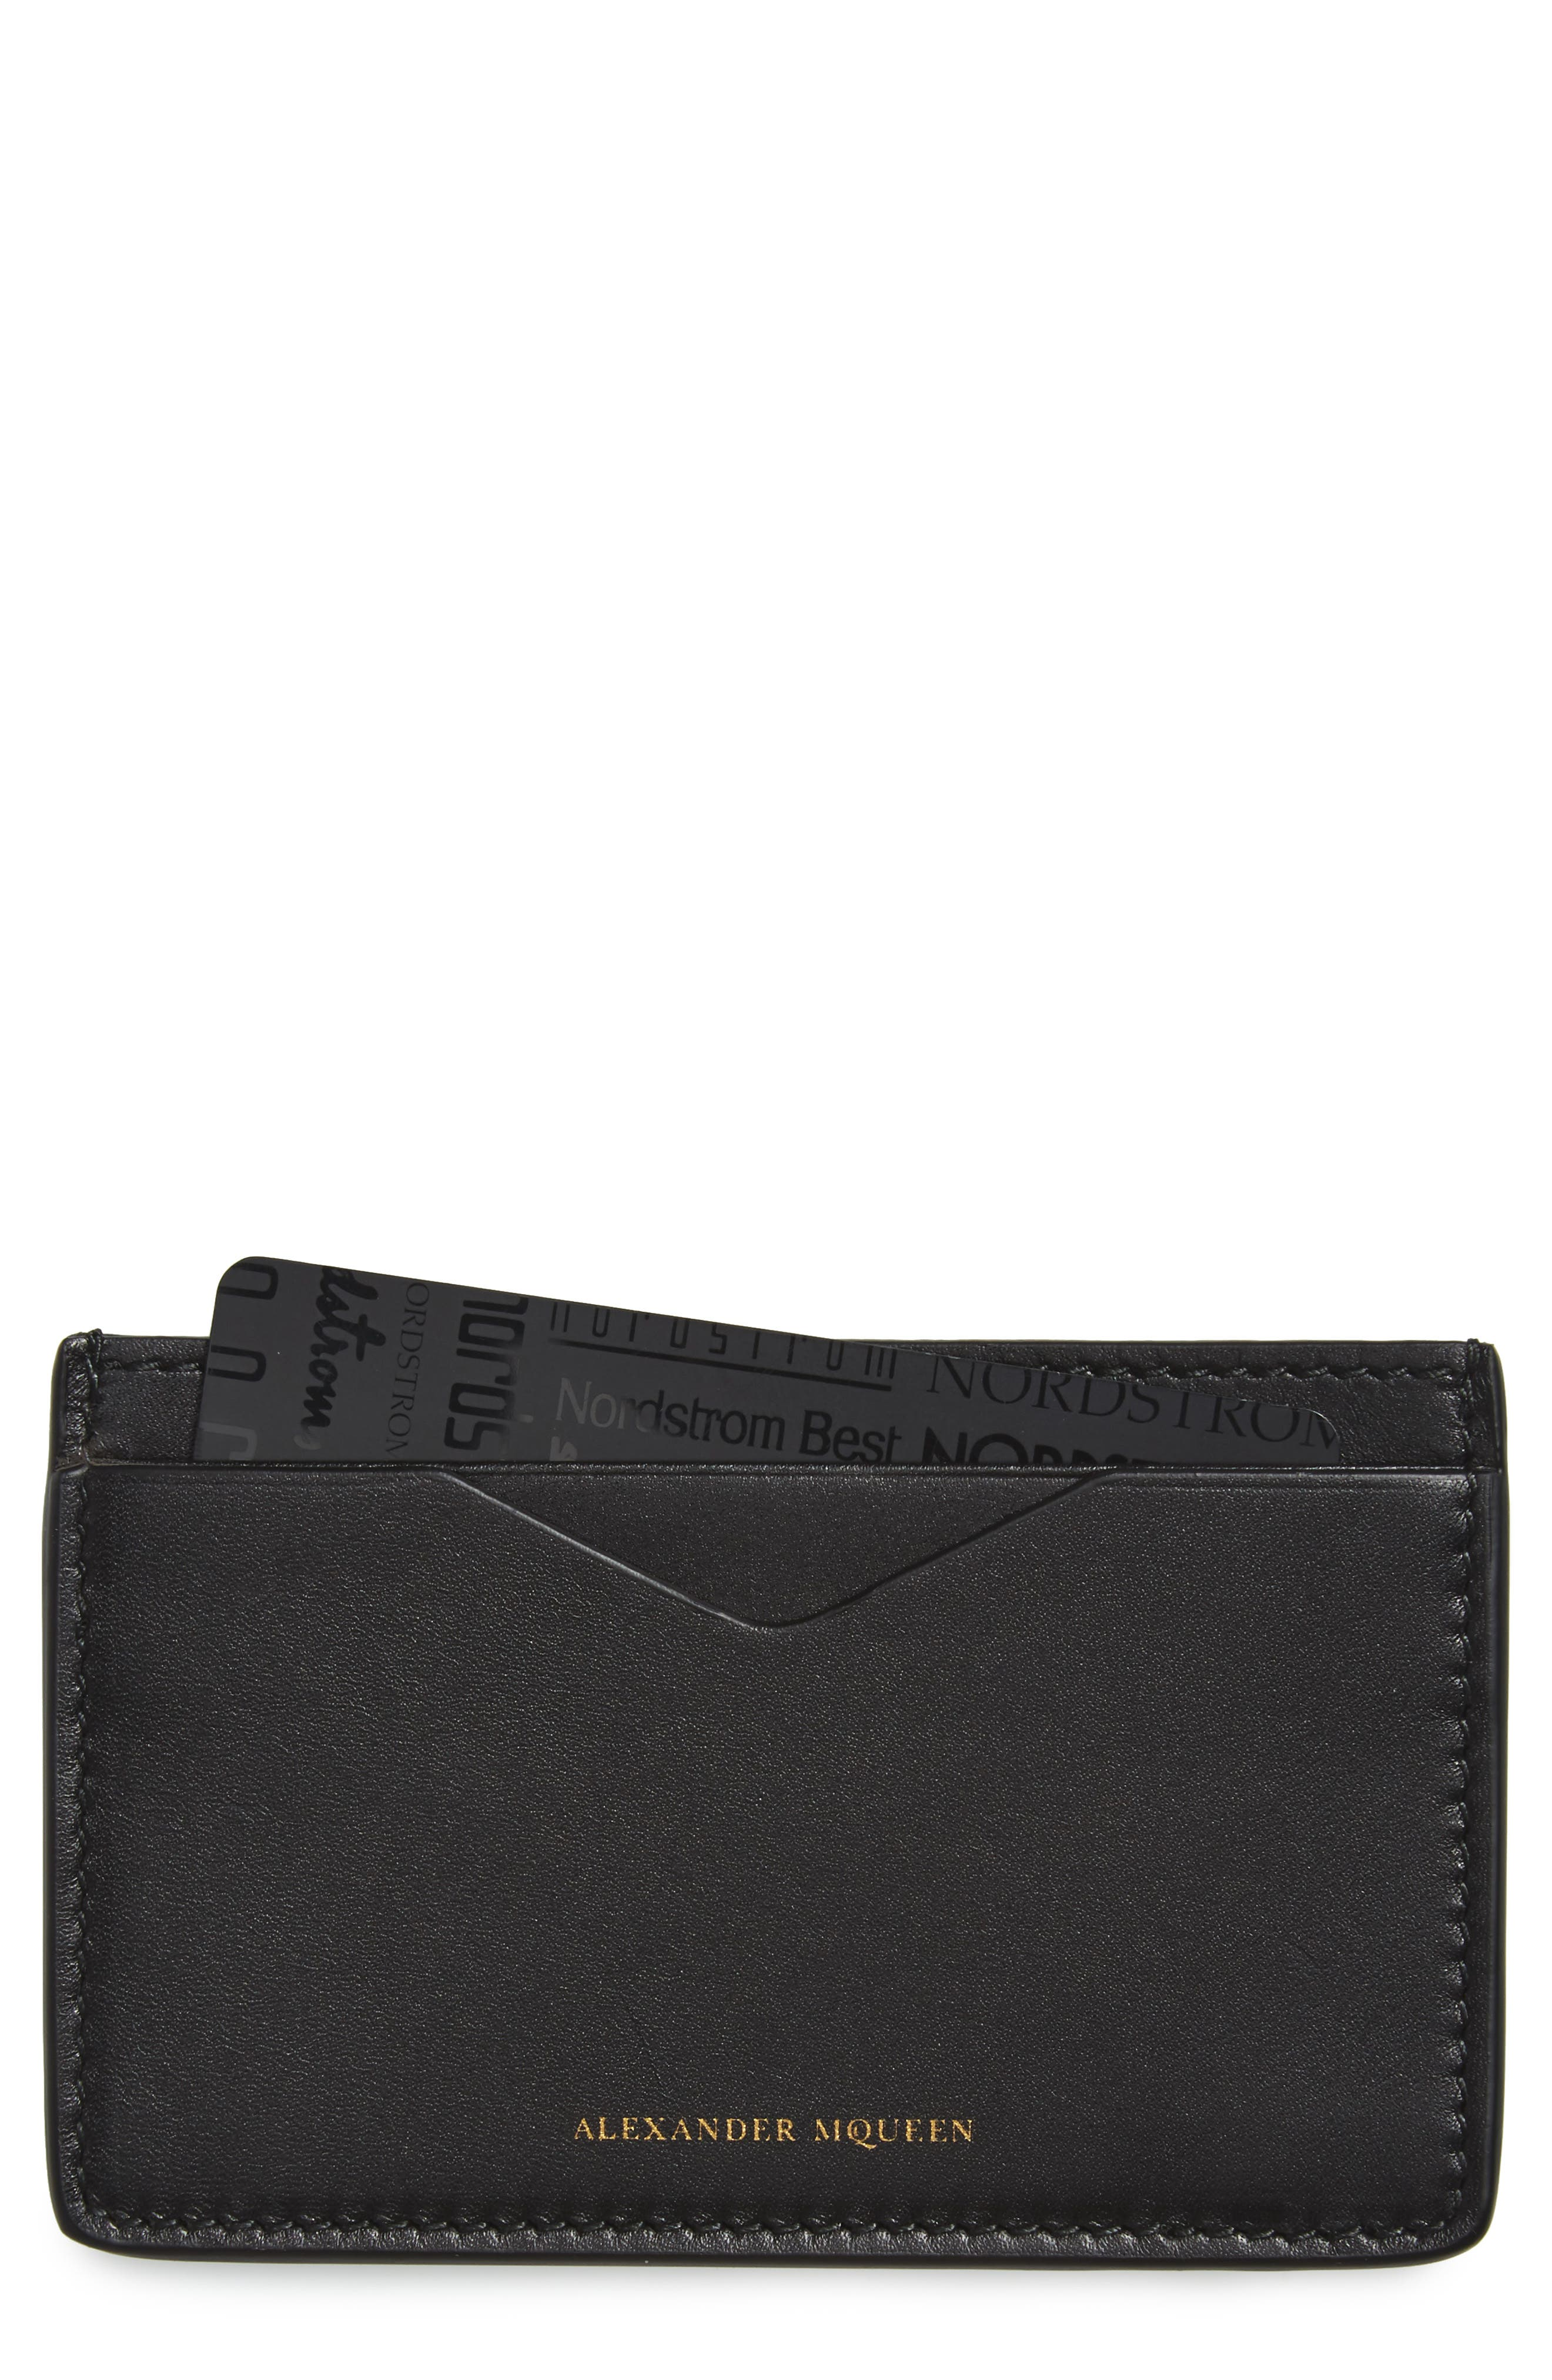 Main Image - Alexander McQueen Leather Card Case